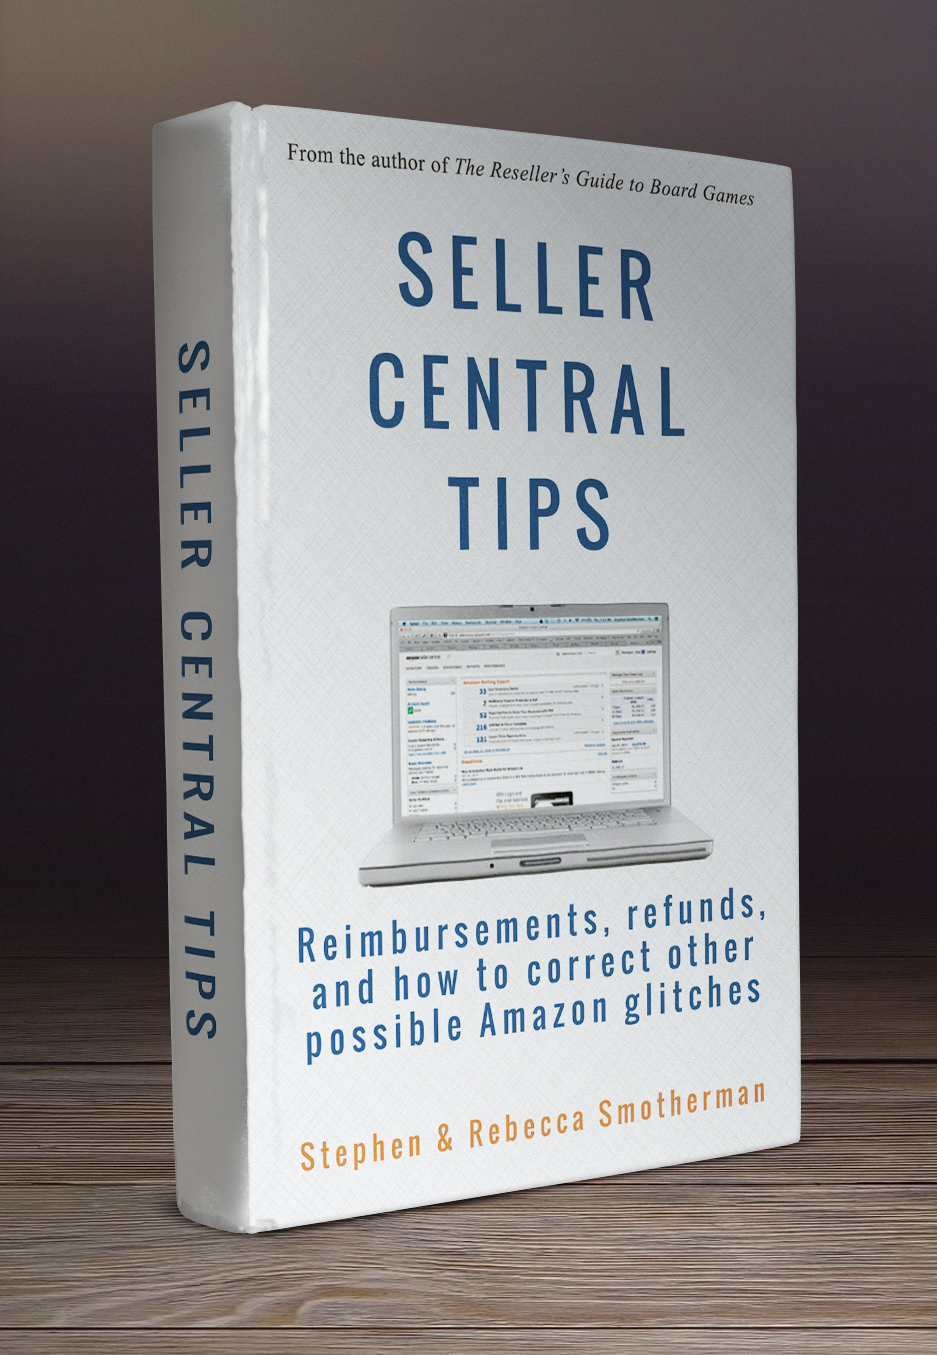 Seller Central Tips by Stephen and Rebecca Smotherman.